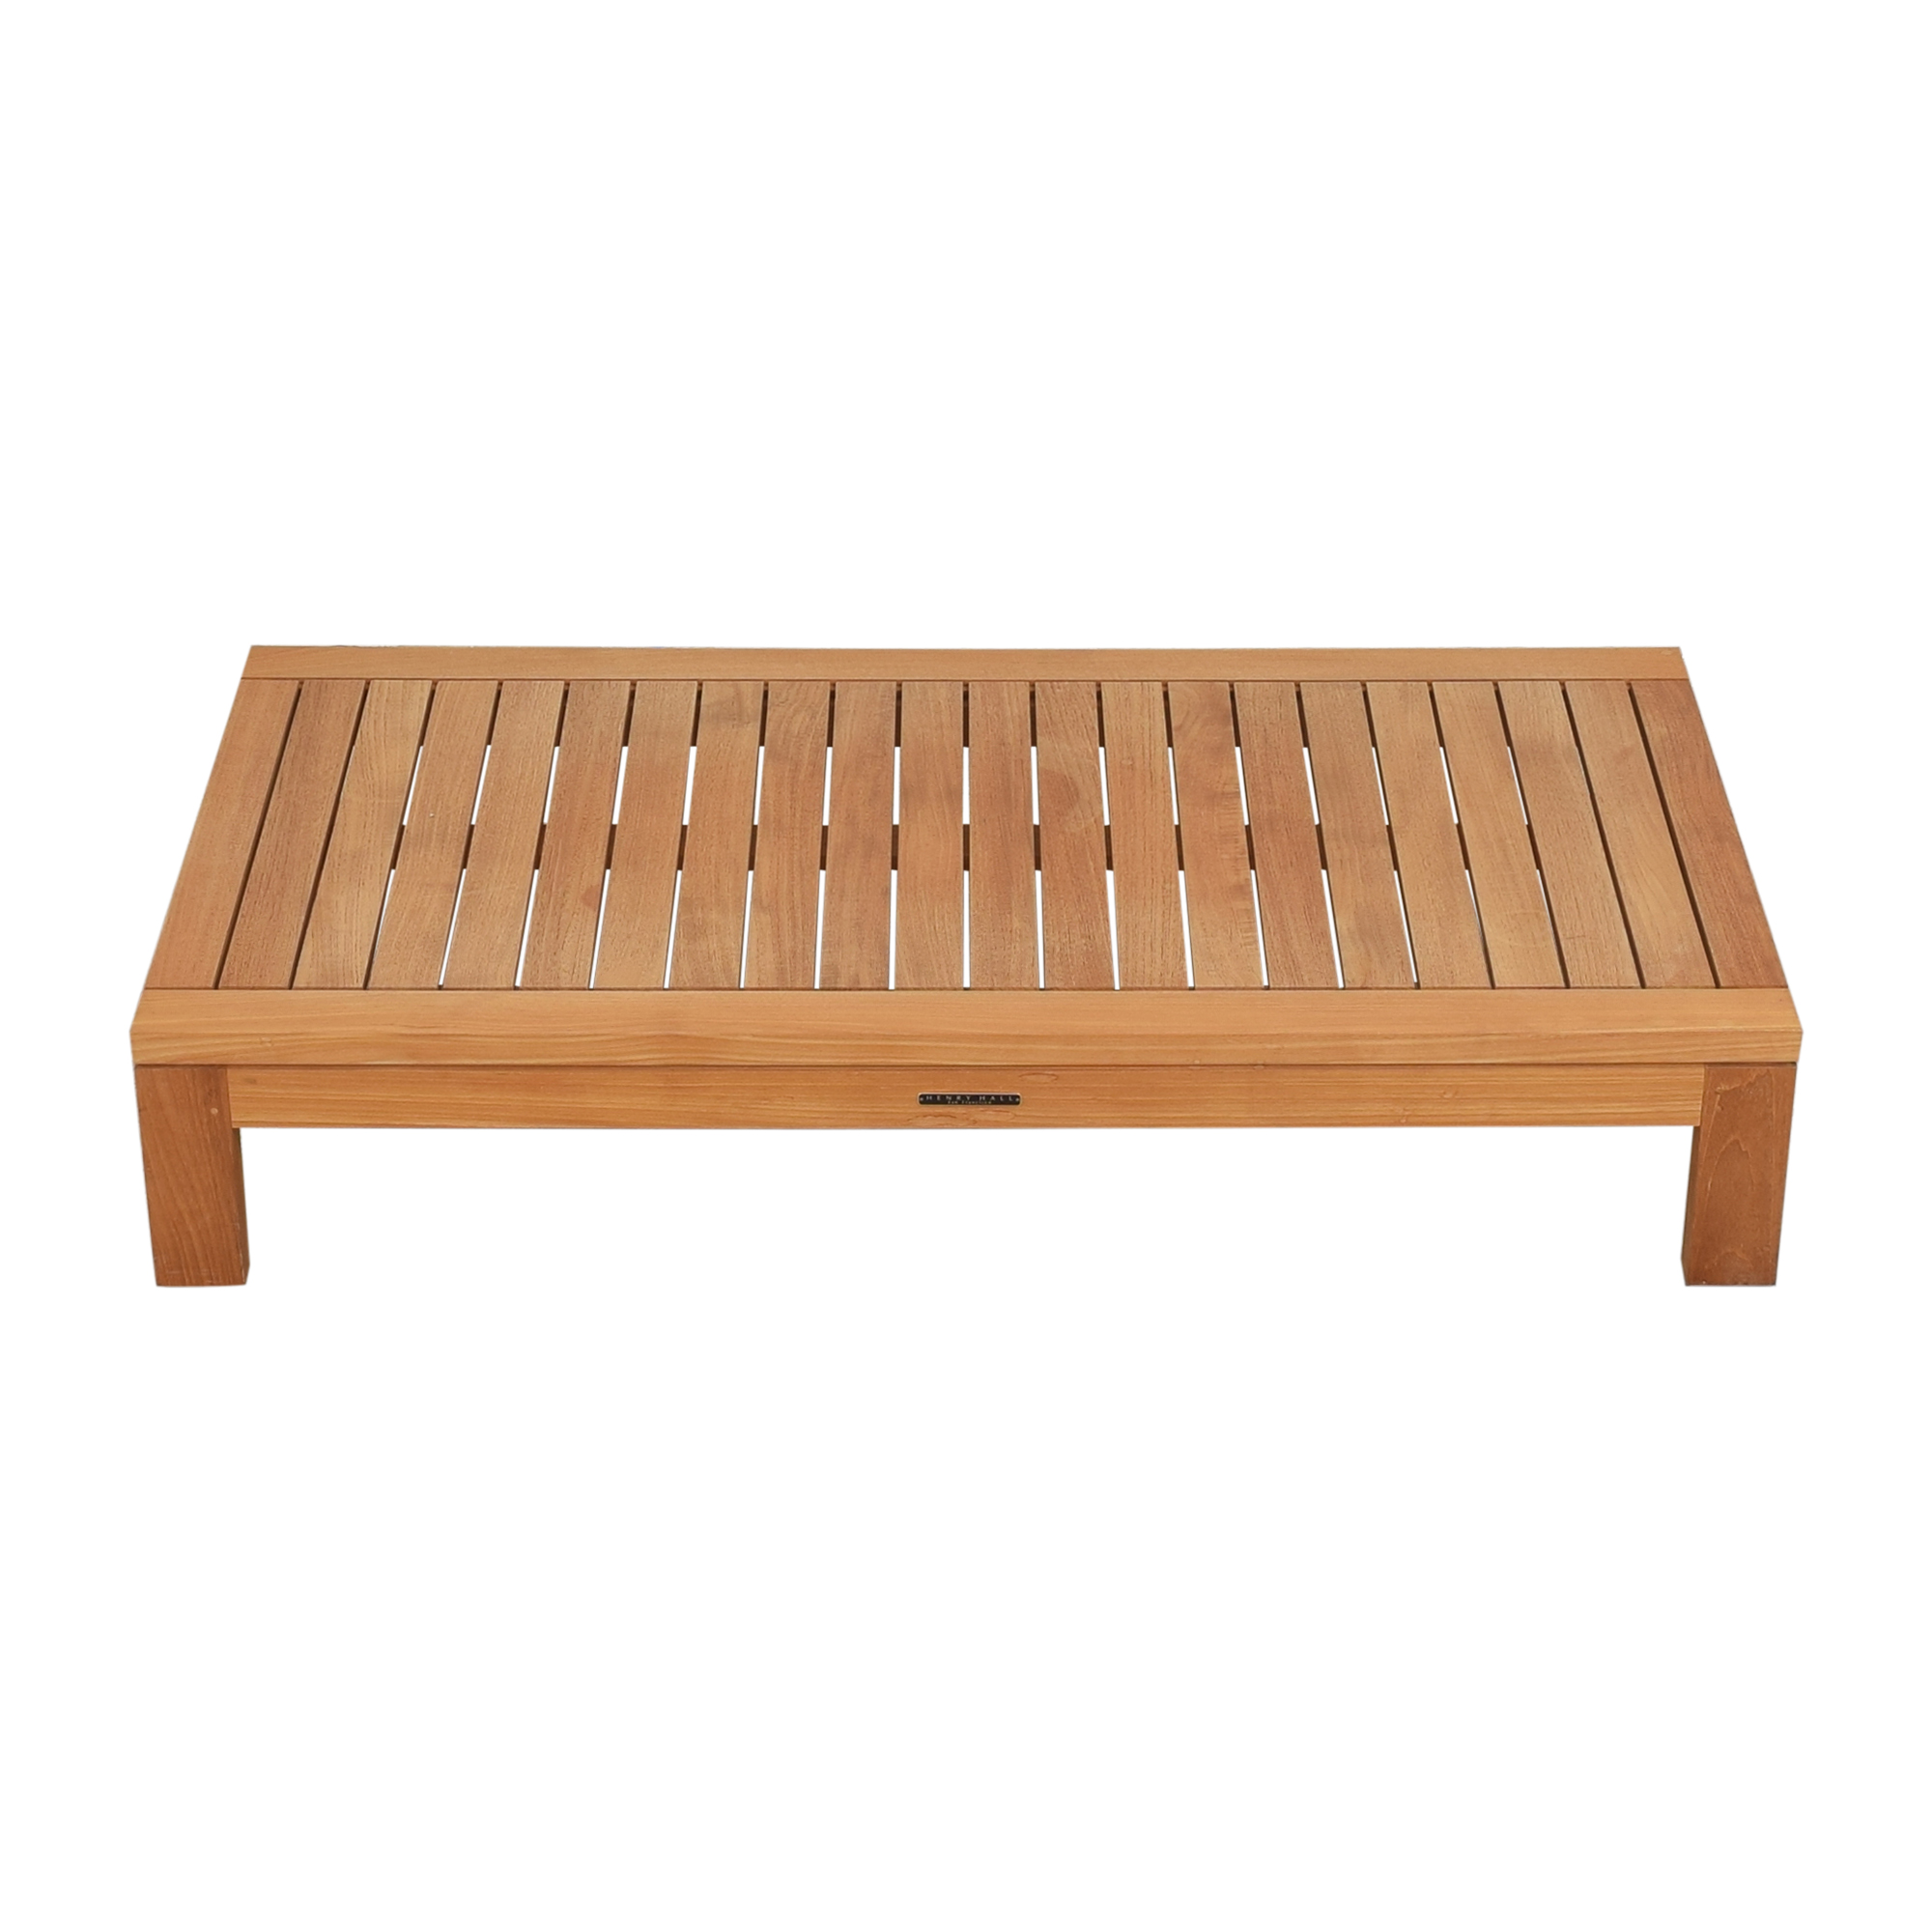 Henry Hall Designs Henry Hall Designs Tru Pure Coffee Table discount